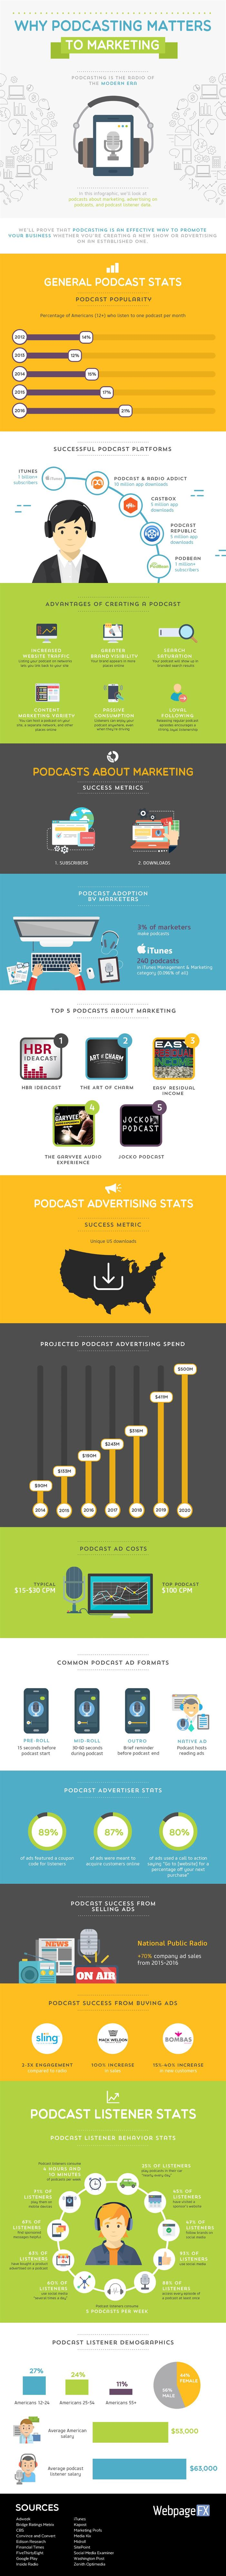 Why Podcasting Matters to Marketing Infographic